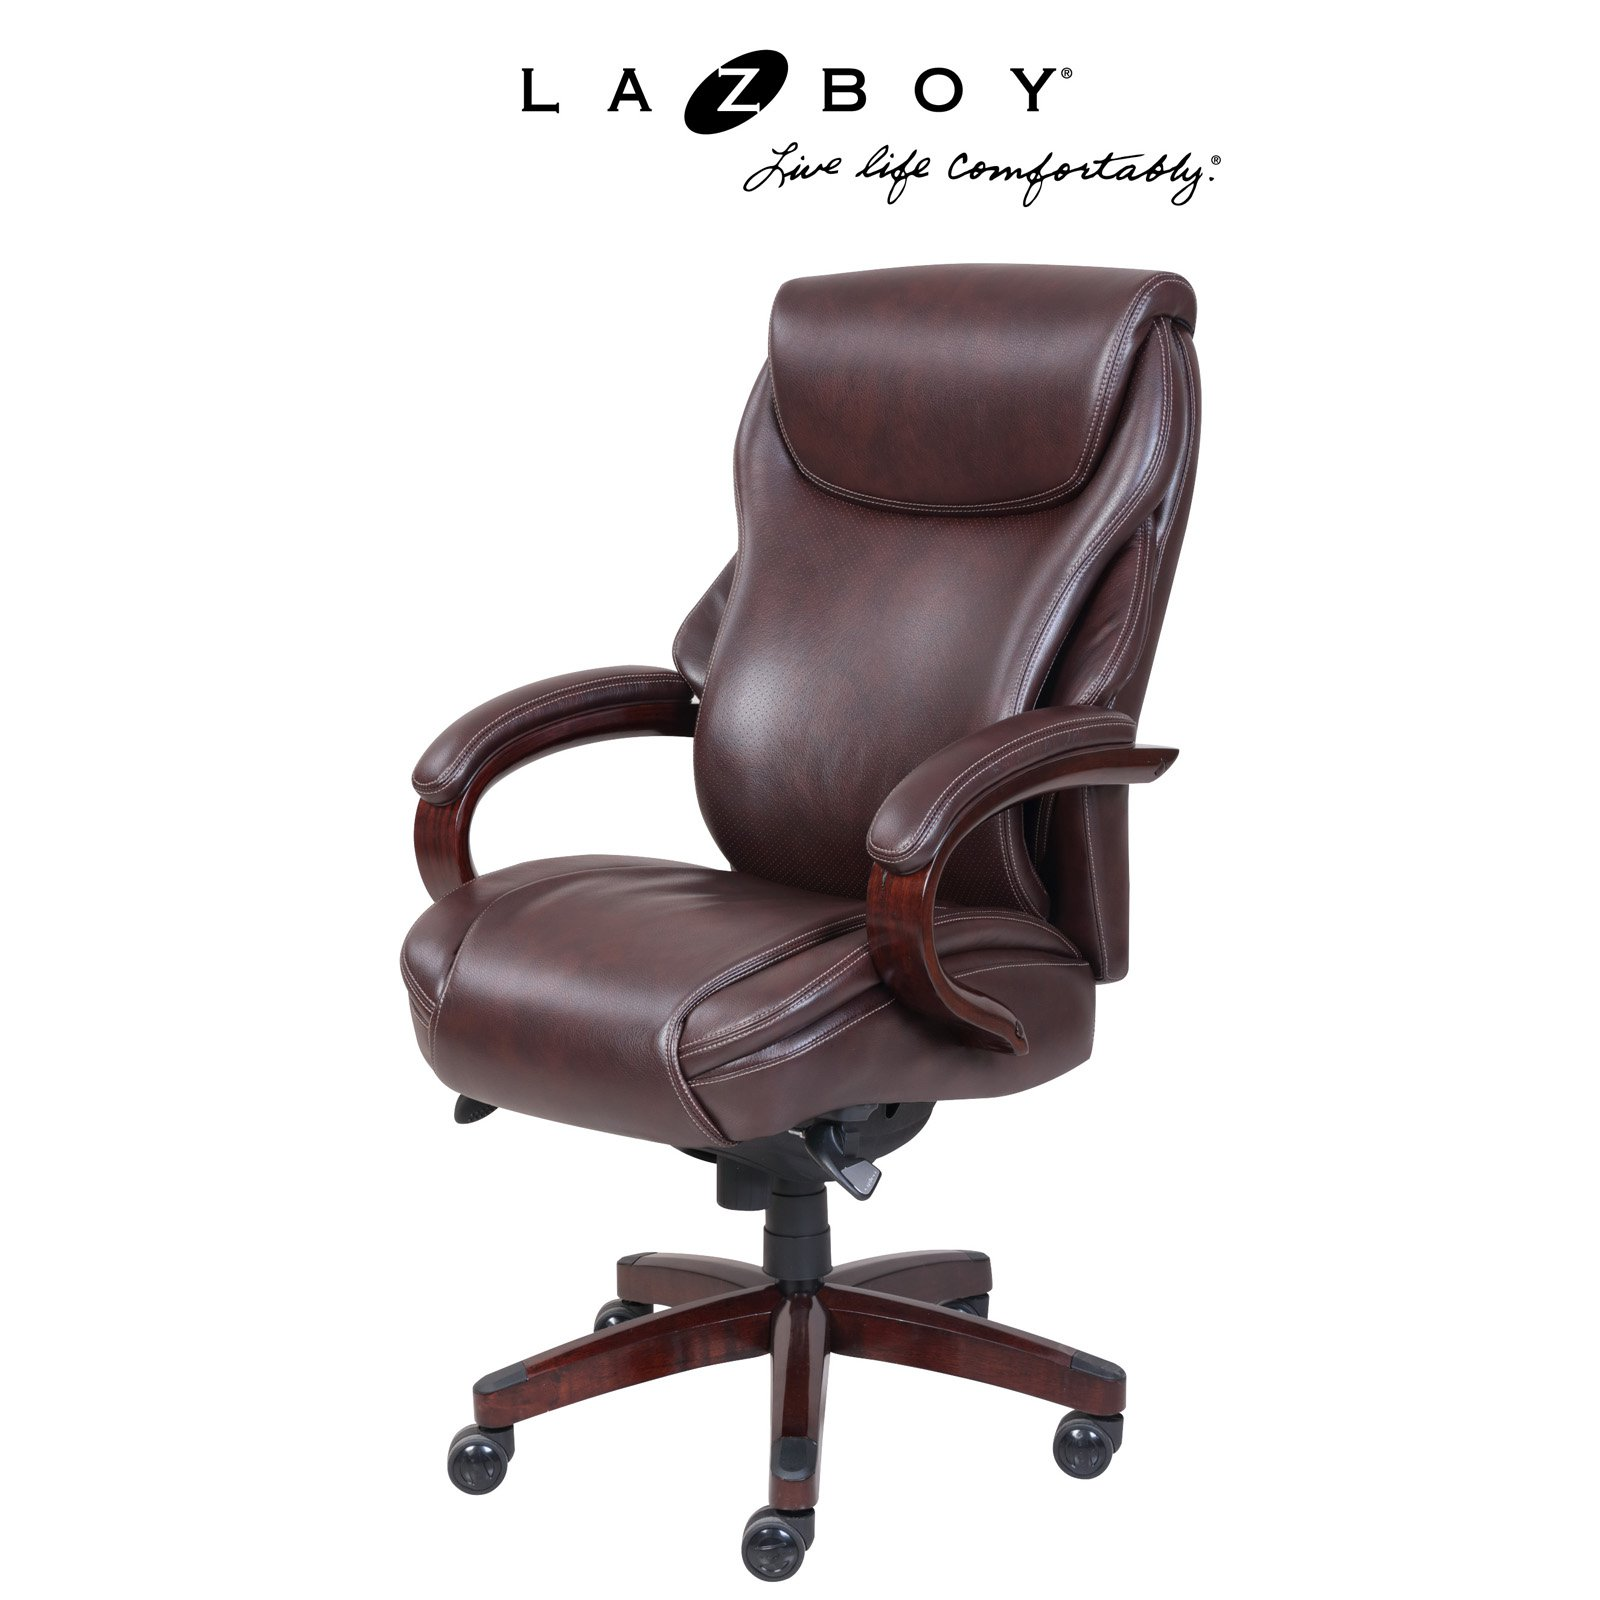 La Z Boy Hyland Executive Office Chair Coffee Walmartcom